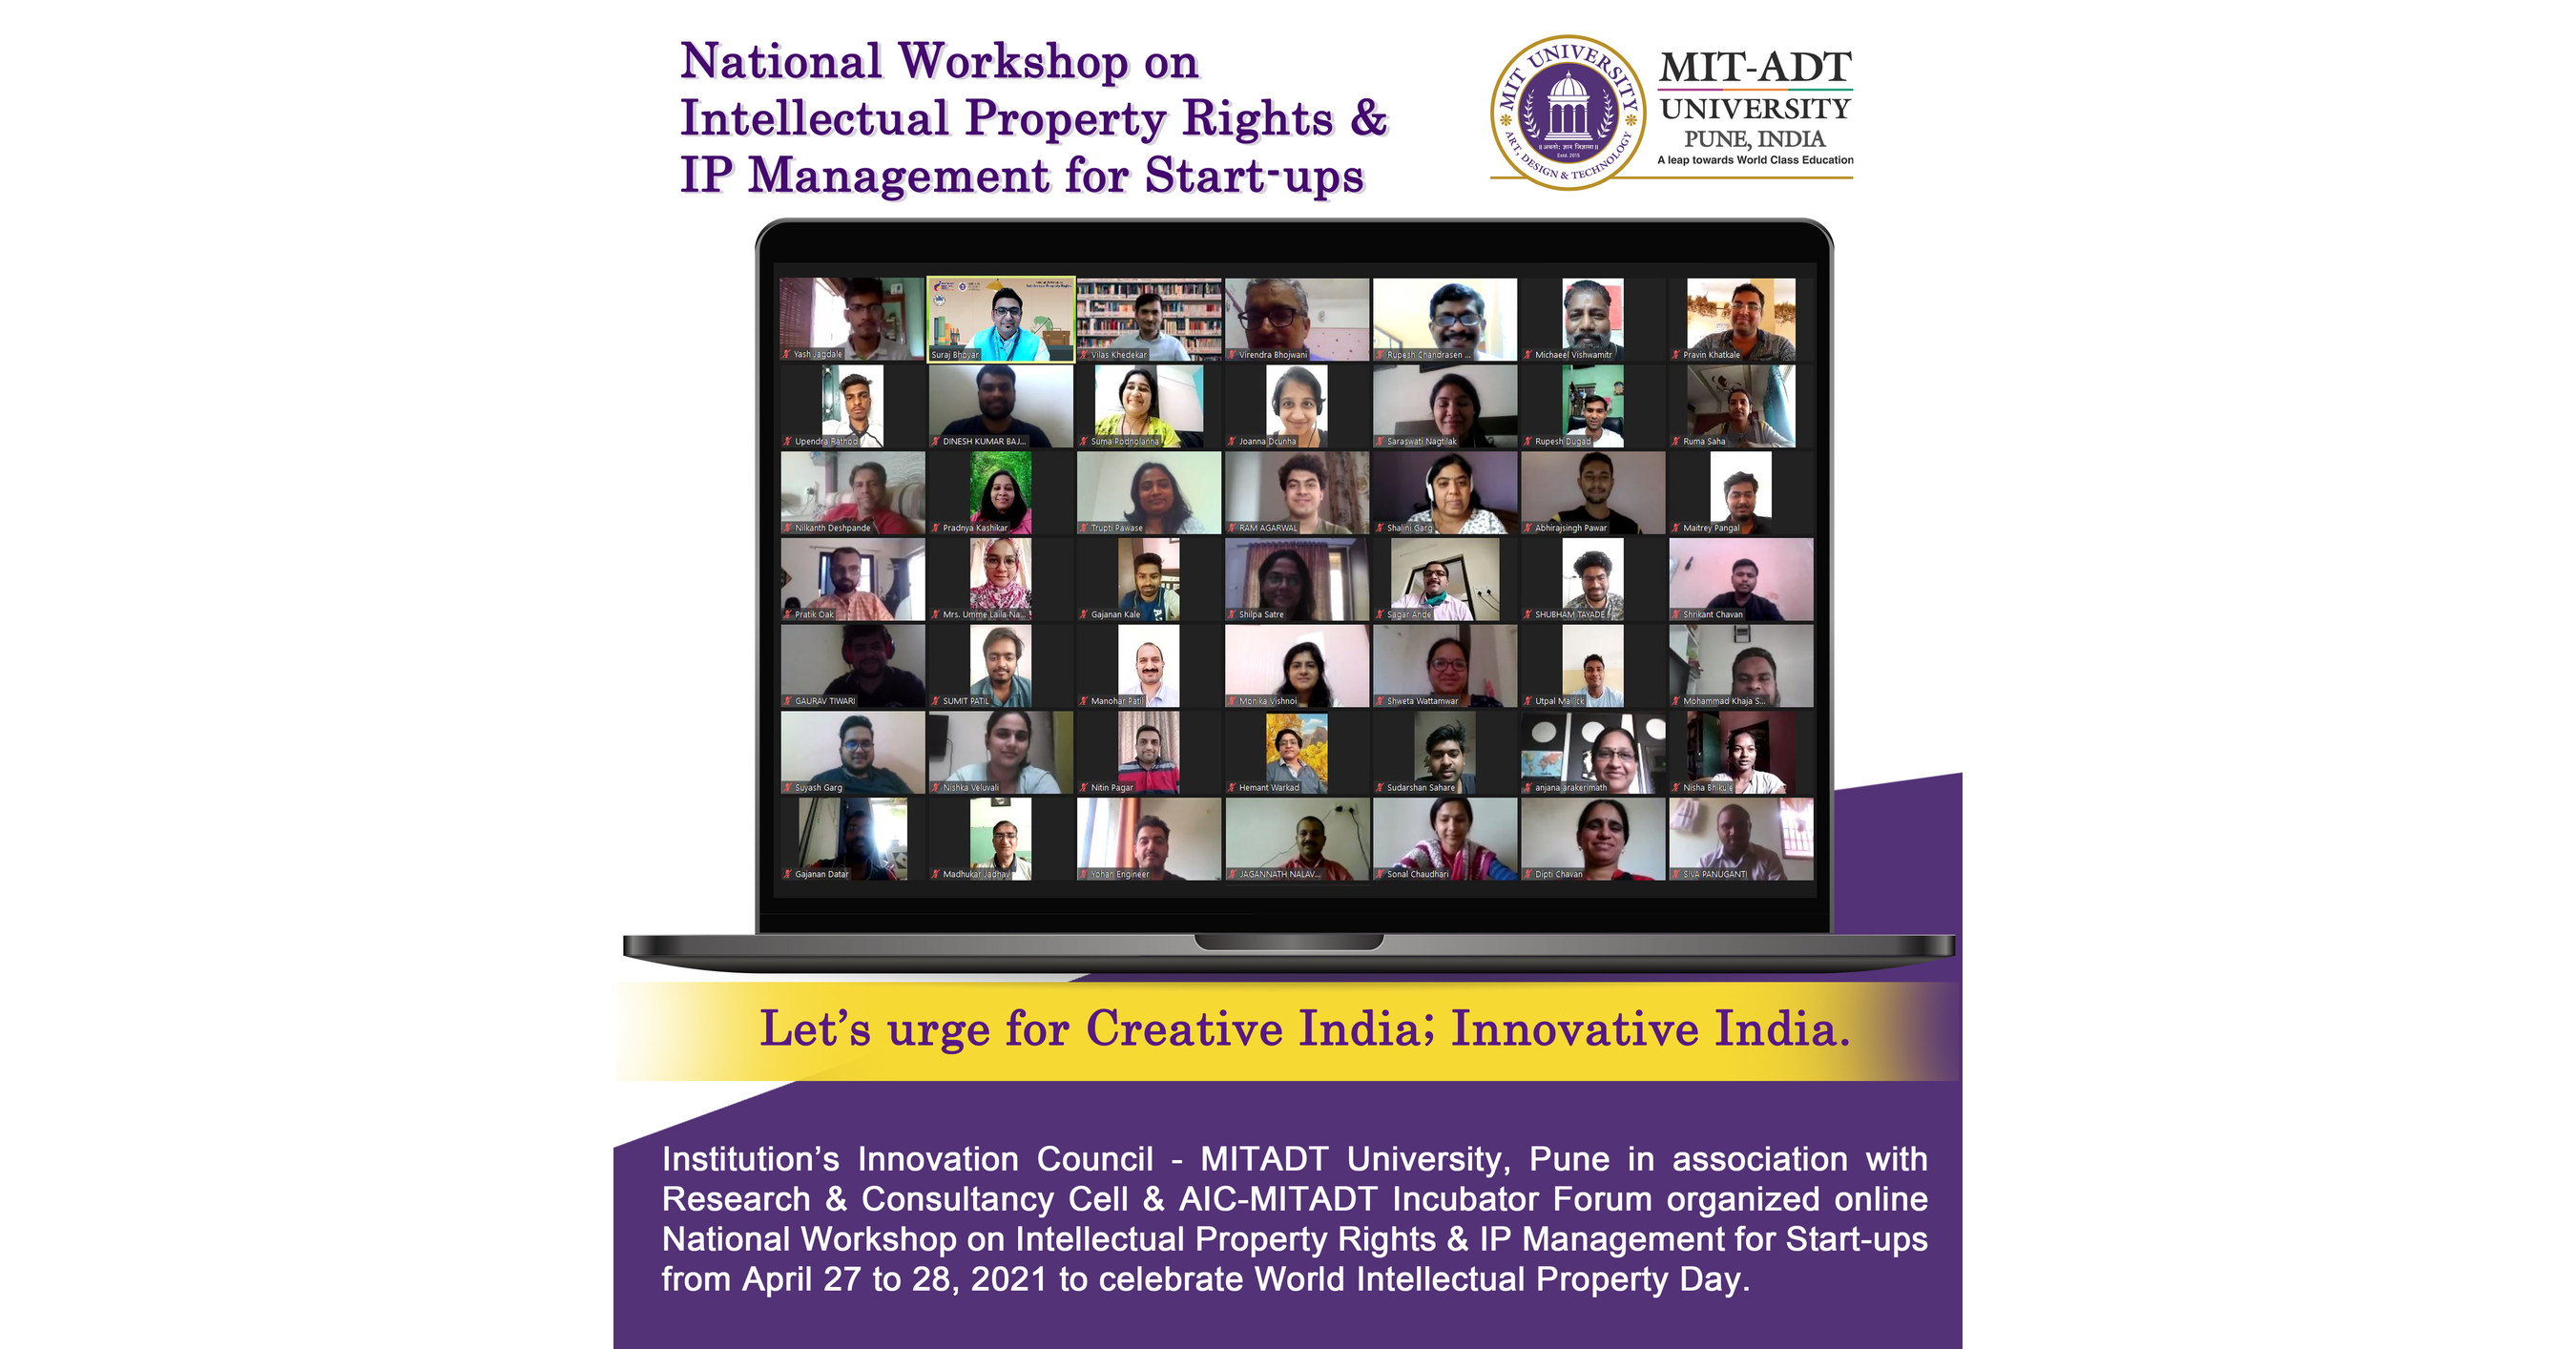 MIT-ADT University pledge to spearhead IP & Entrepreneurship movement on World Intellectual Property Day